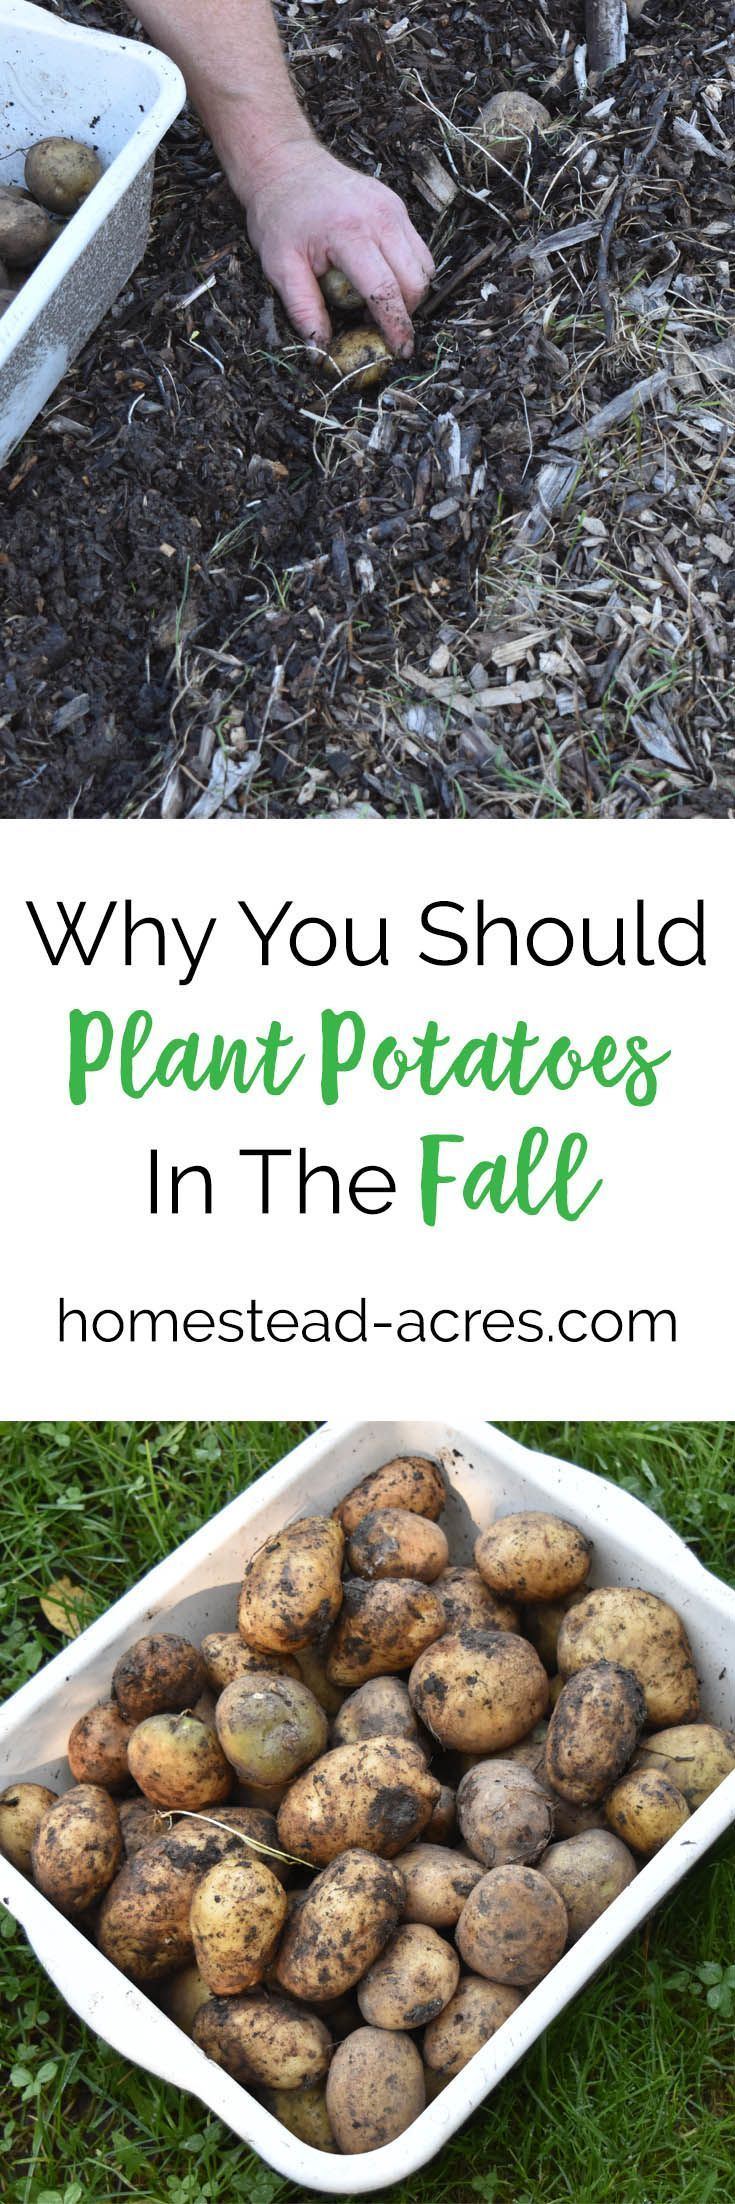 820 Best Planters Images On Pinterest Backyard Ideas Vegetable Tomato Plants To Potatoes Grafted Plant Diagram Click Image See Planting How In The Fall Save Time And Get A